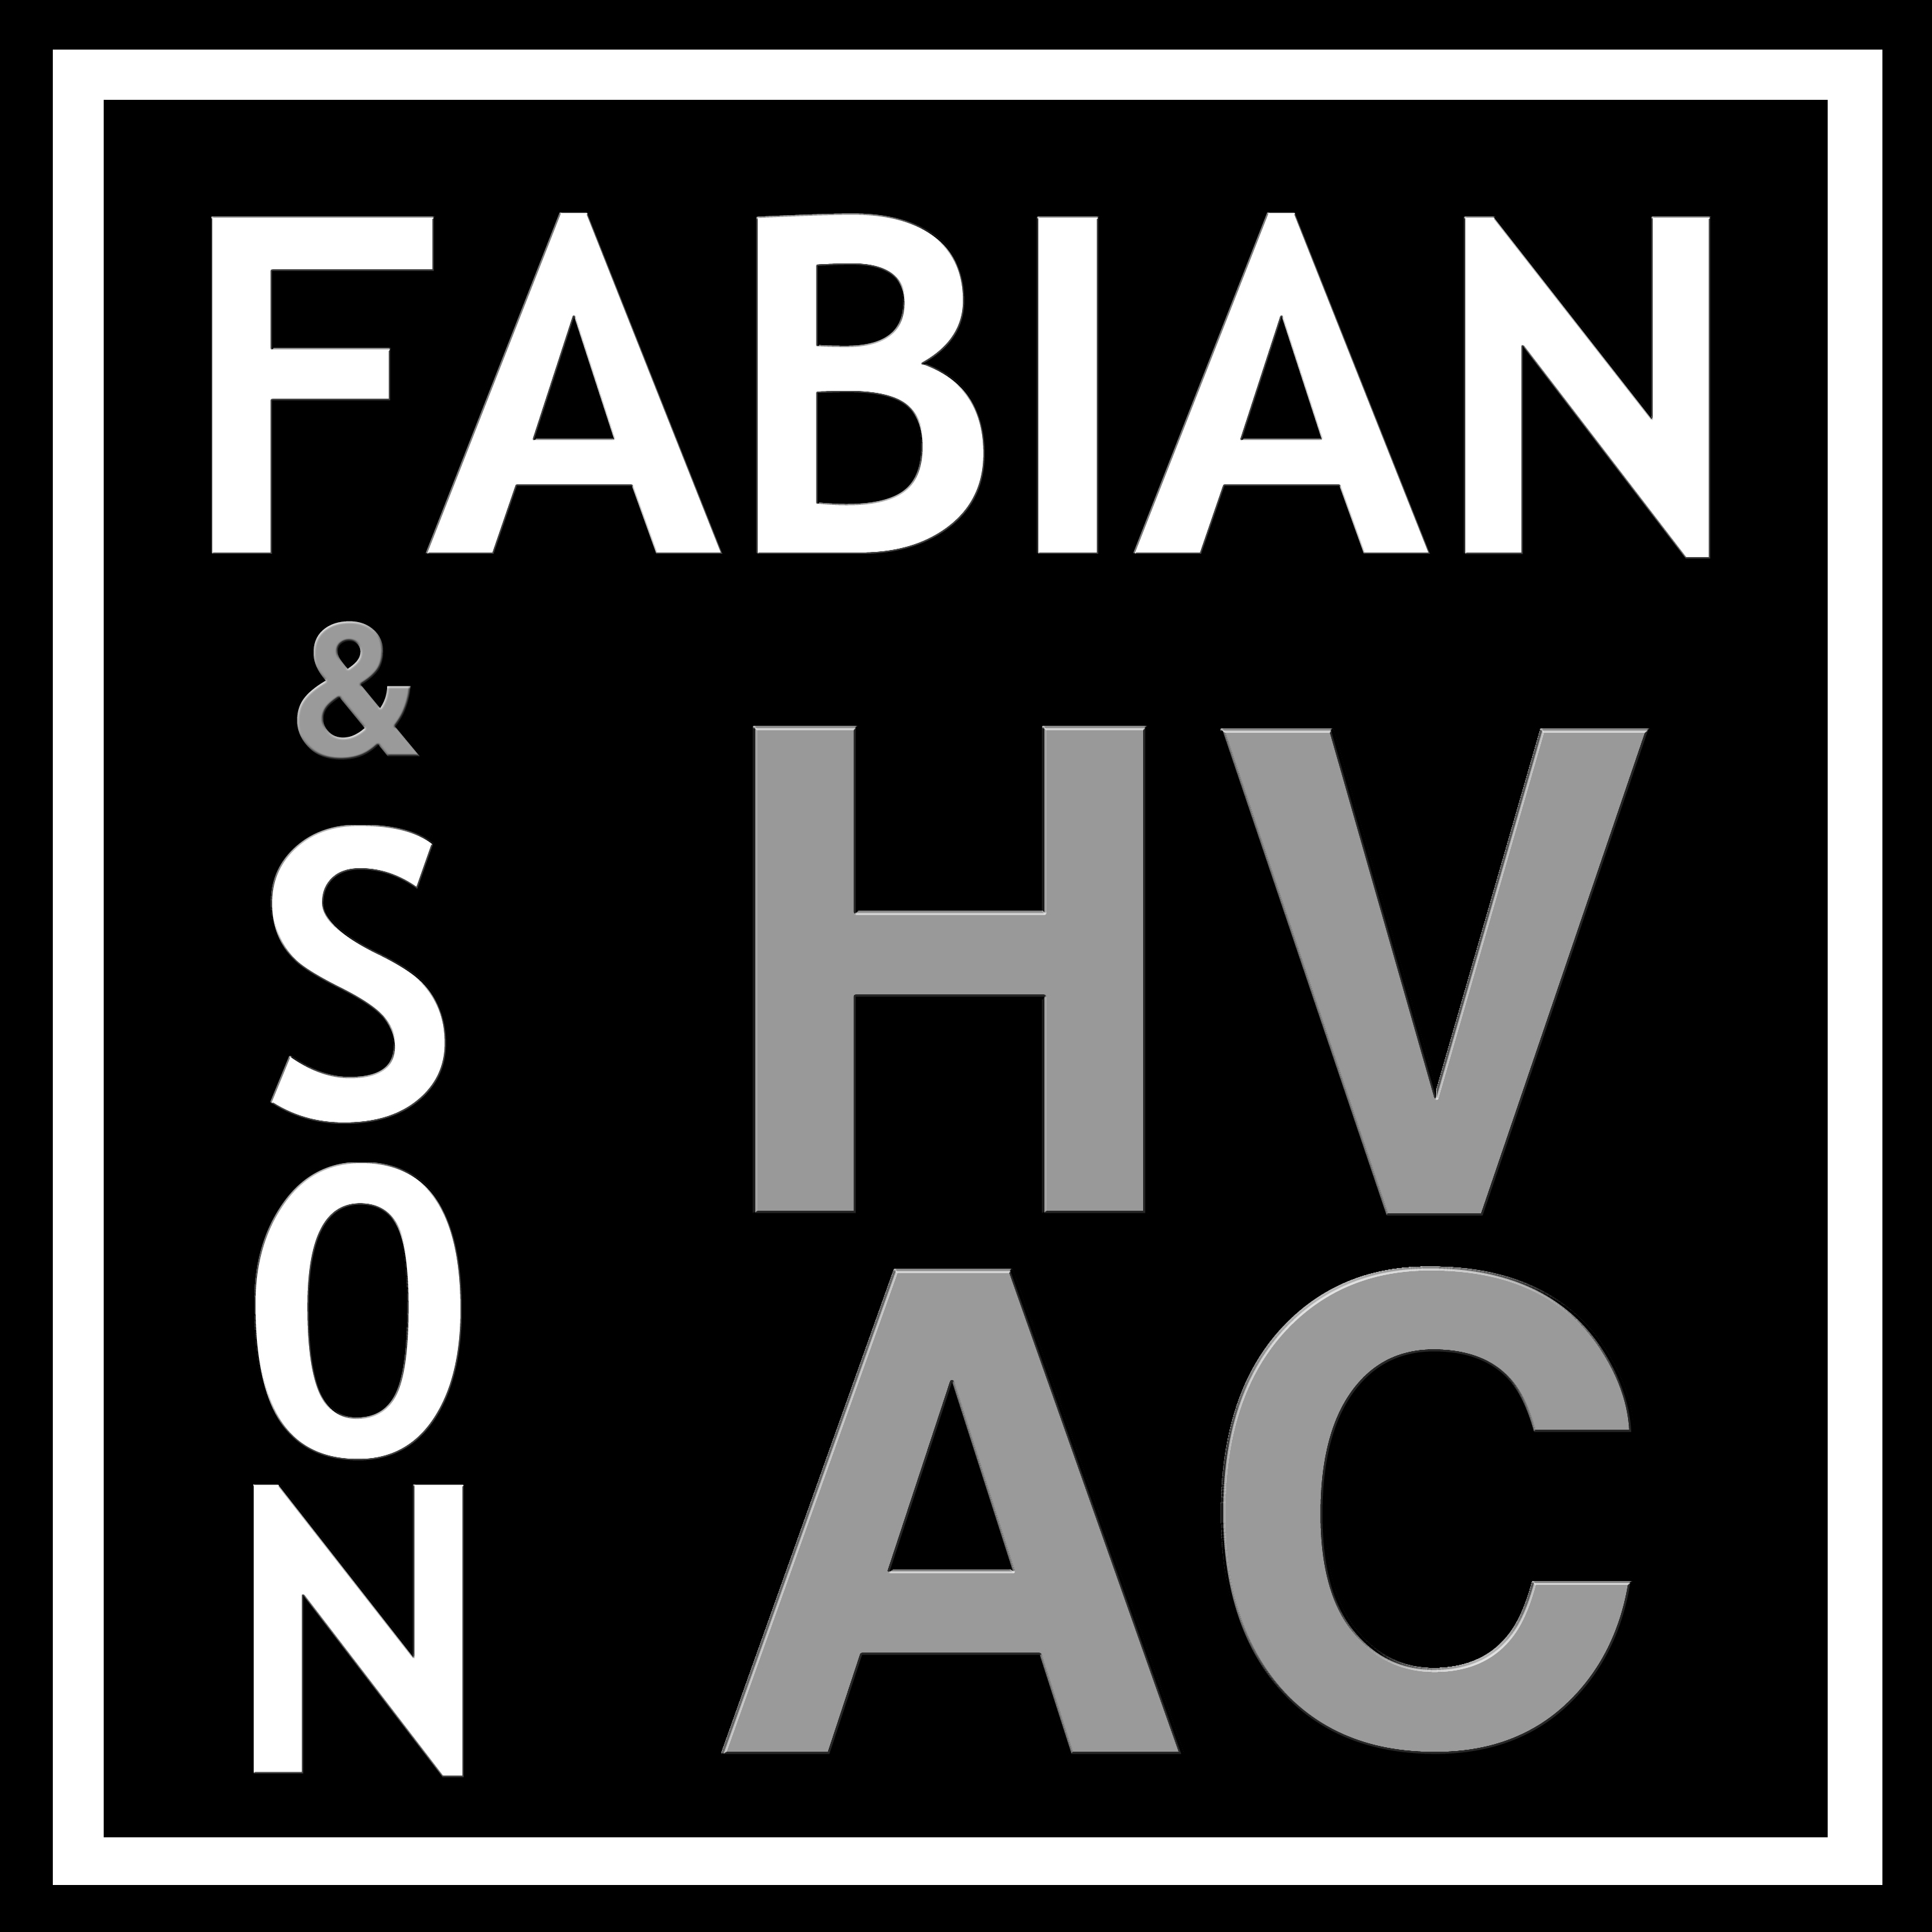 FABIAN & SON HEATING AND COOLING logo